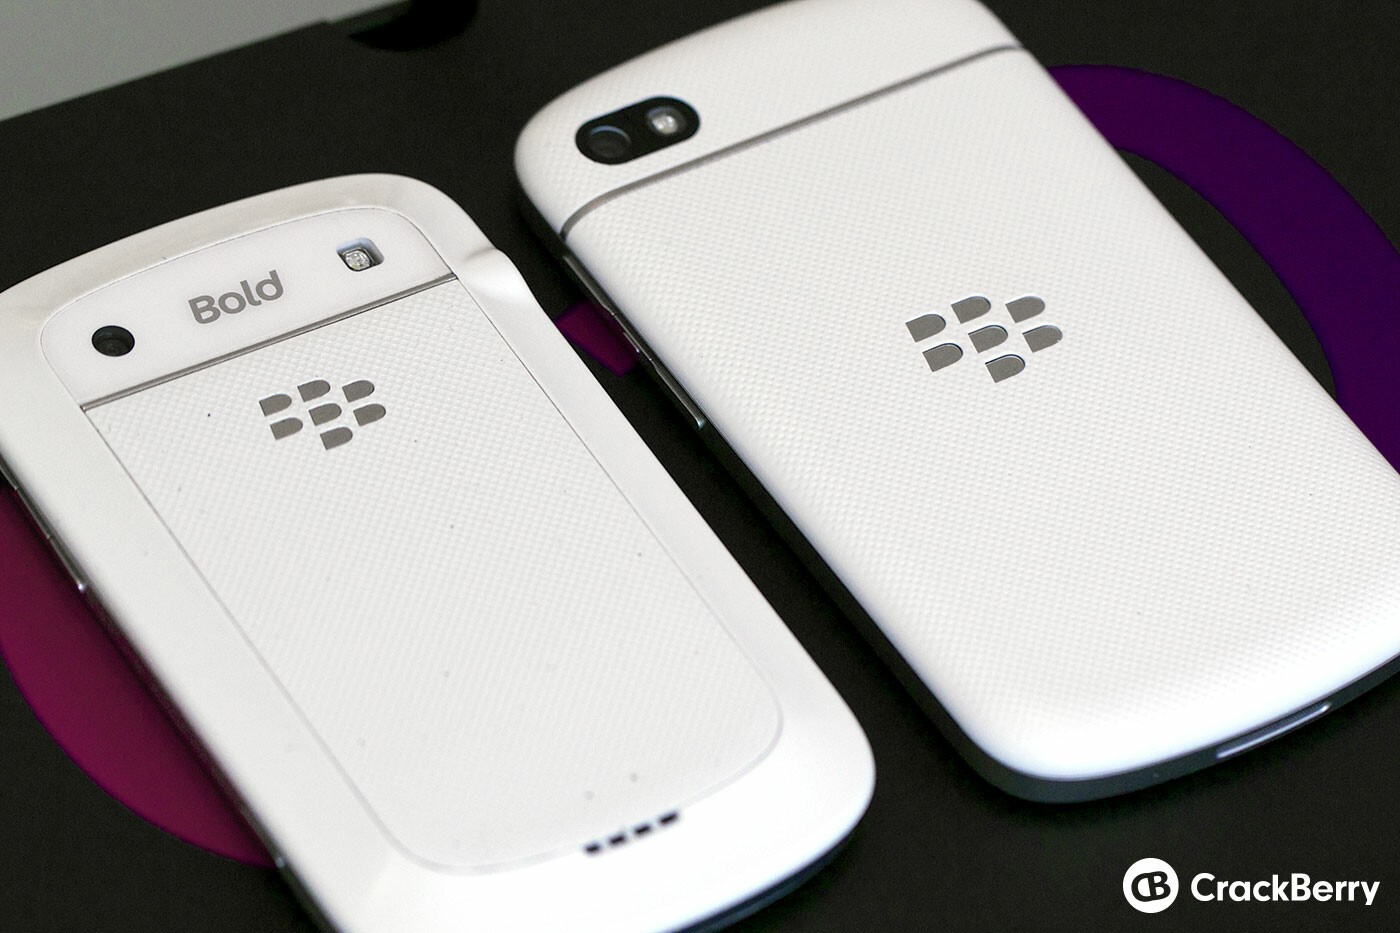 White BlackBerry Q10 (right) and Bold 9900 (left) Back